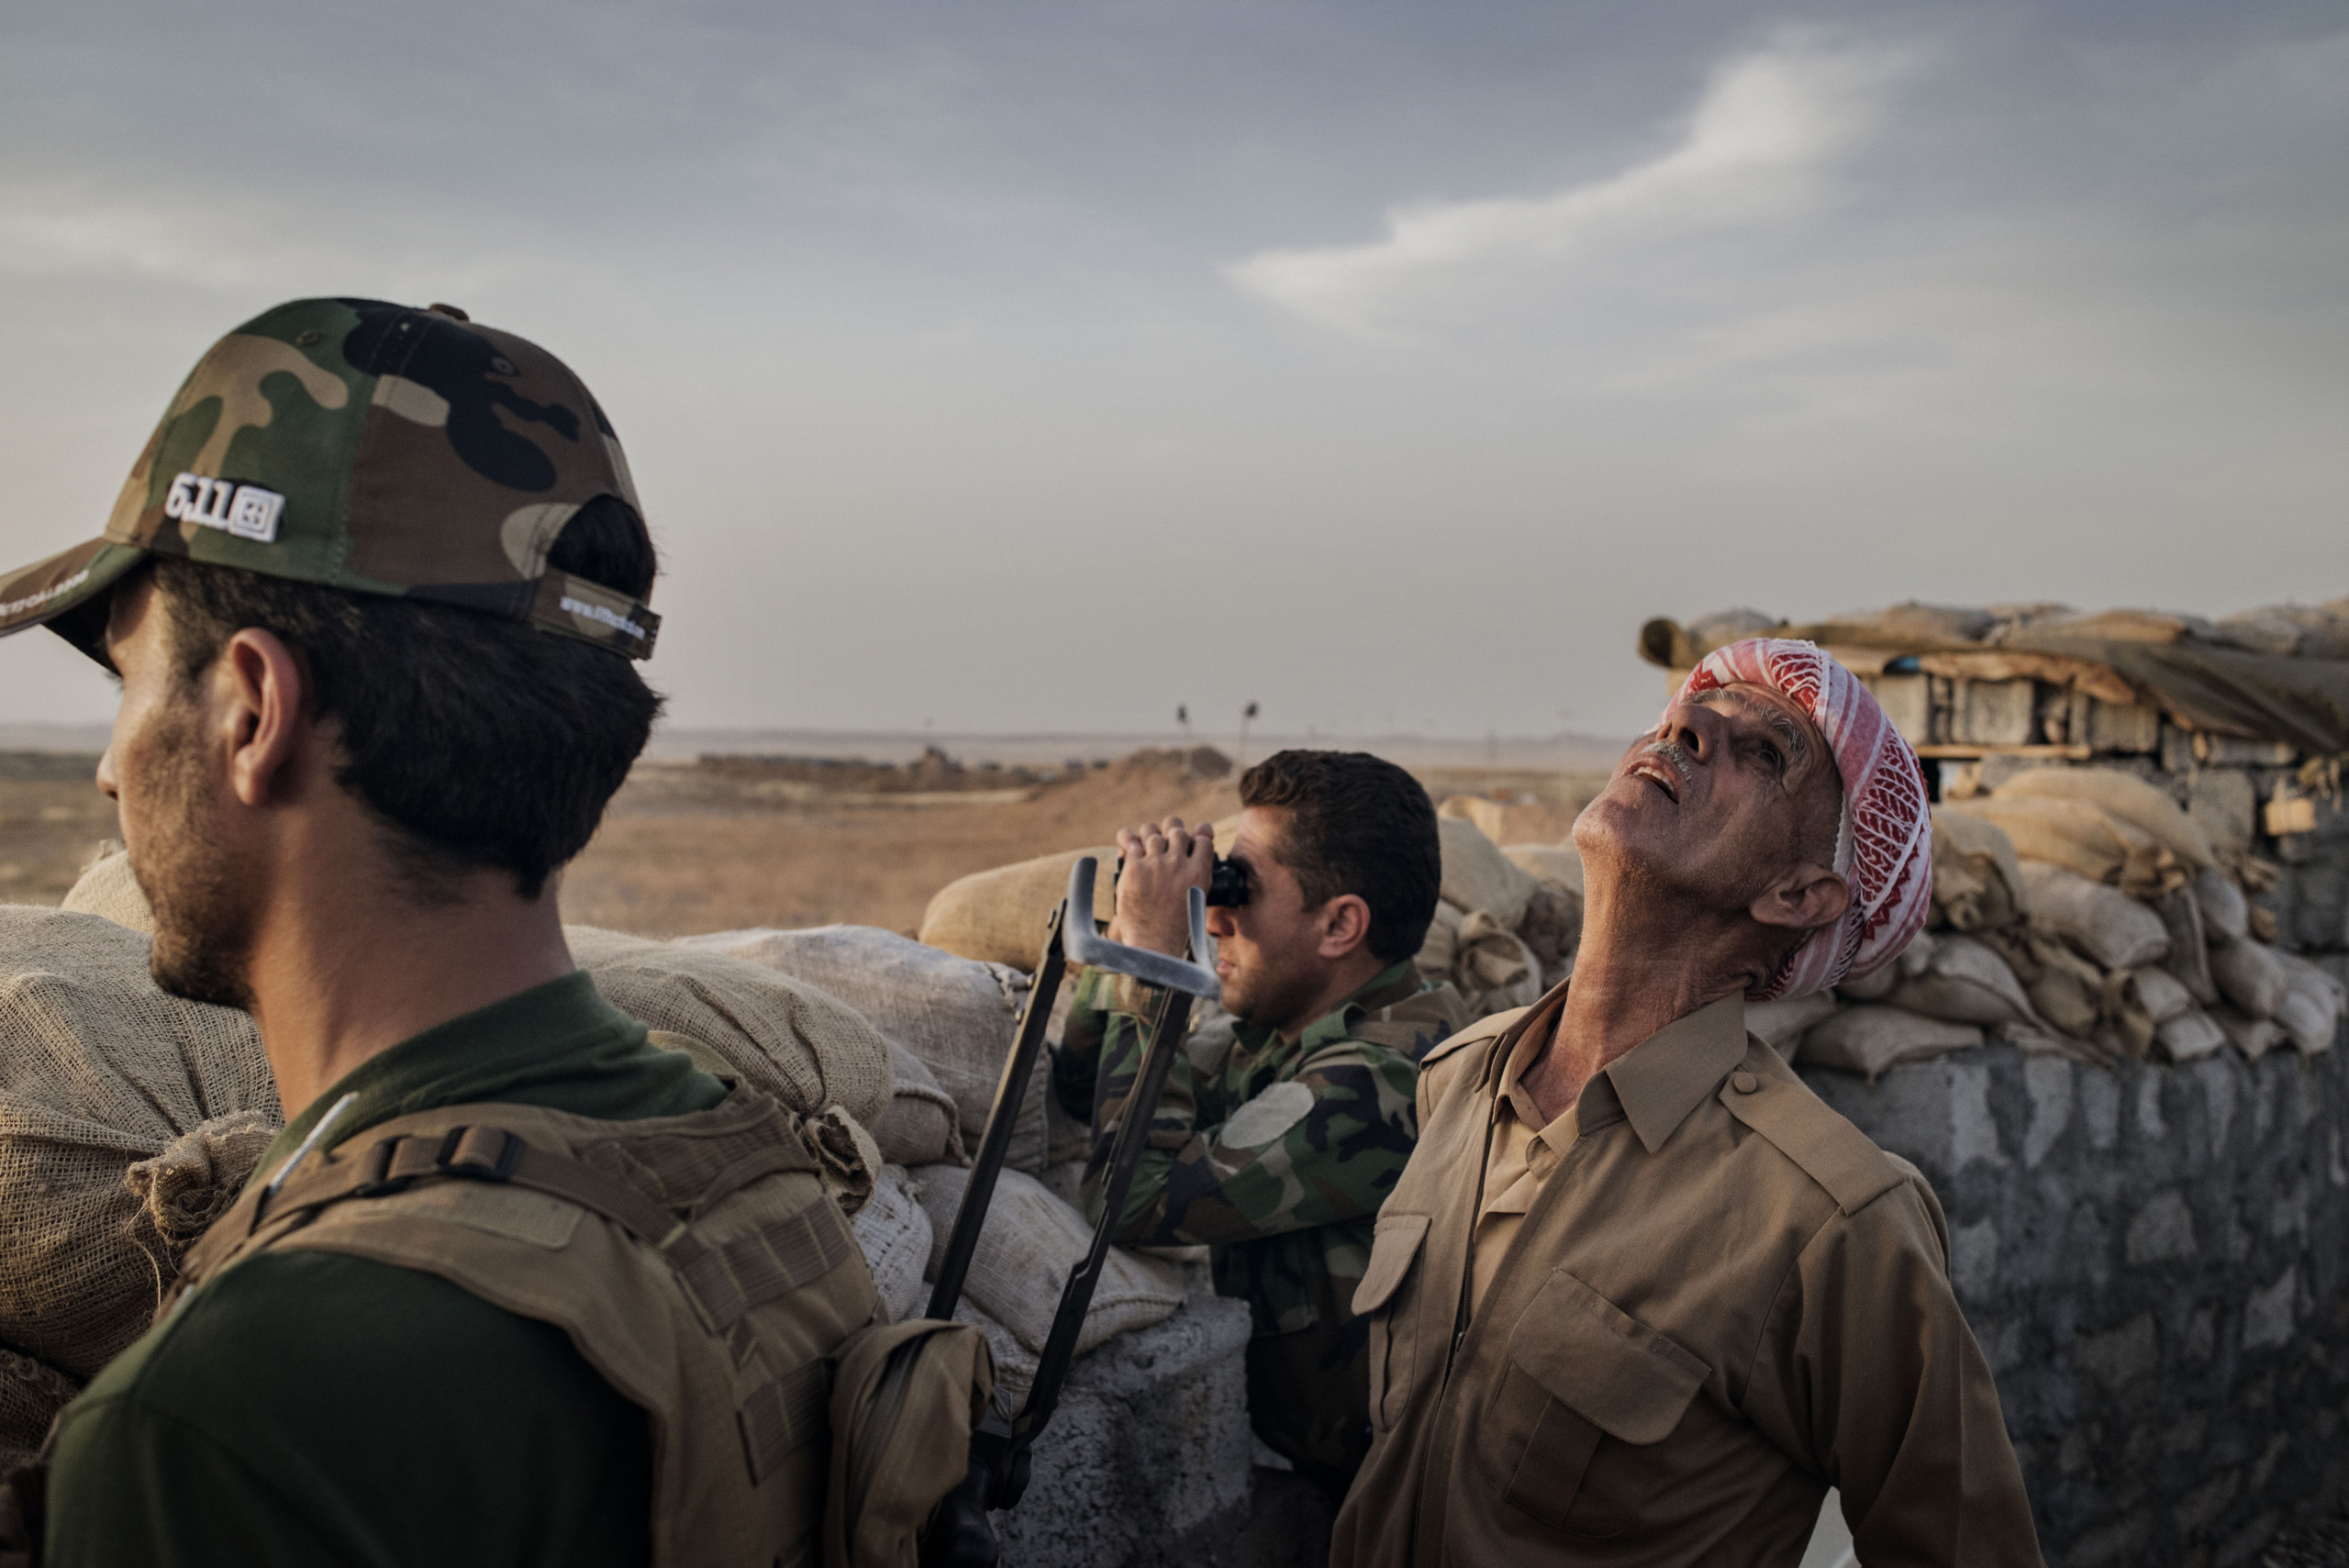 Kurdish Peshmerga forces defend their front line position against ISIS fighters in the northern Iraqi village of Sultan Abdullah, May 15, 2016.